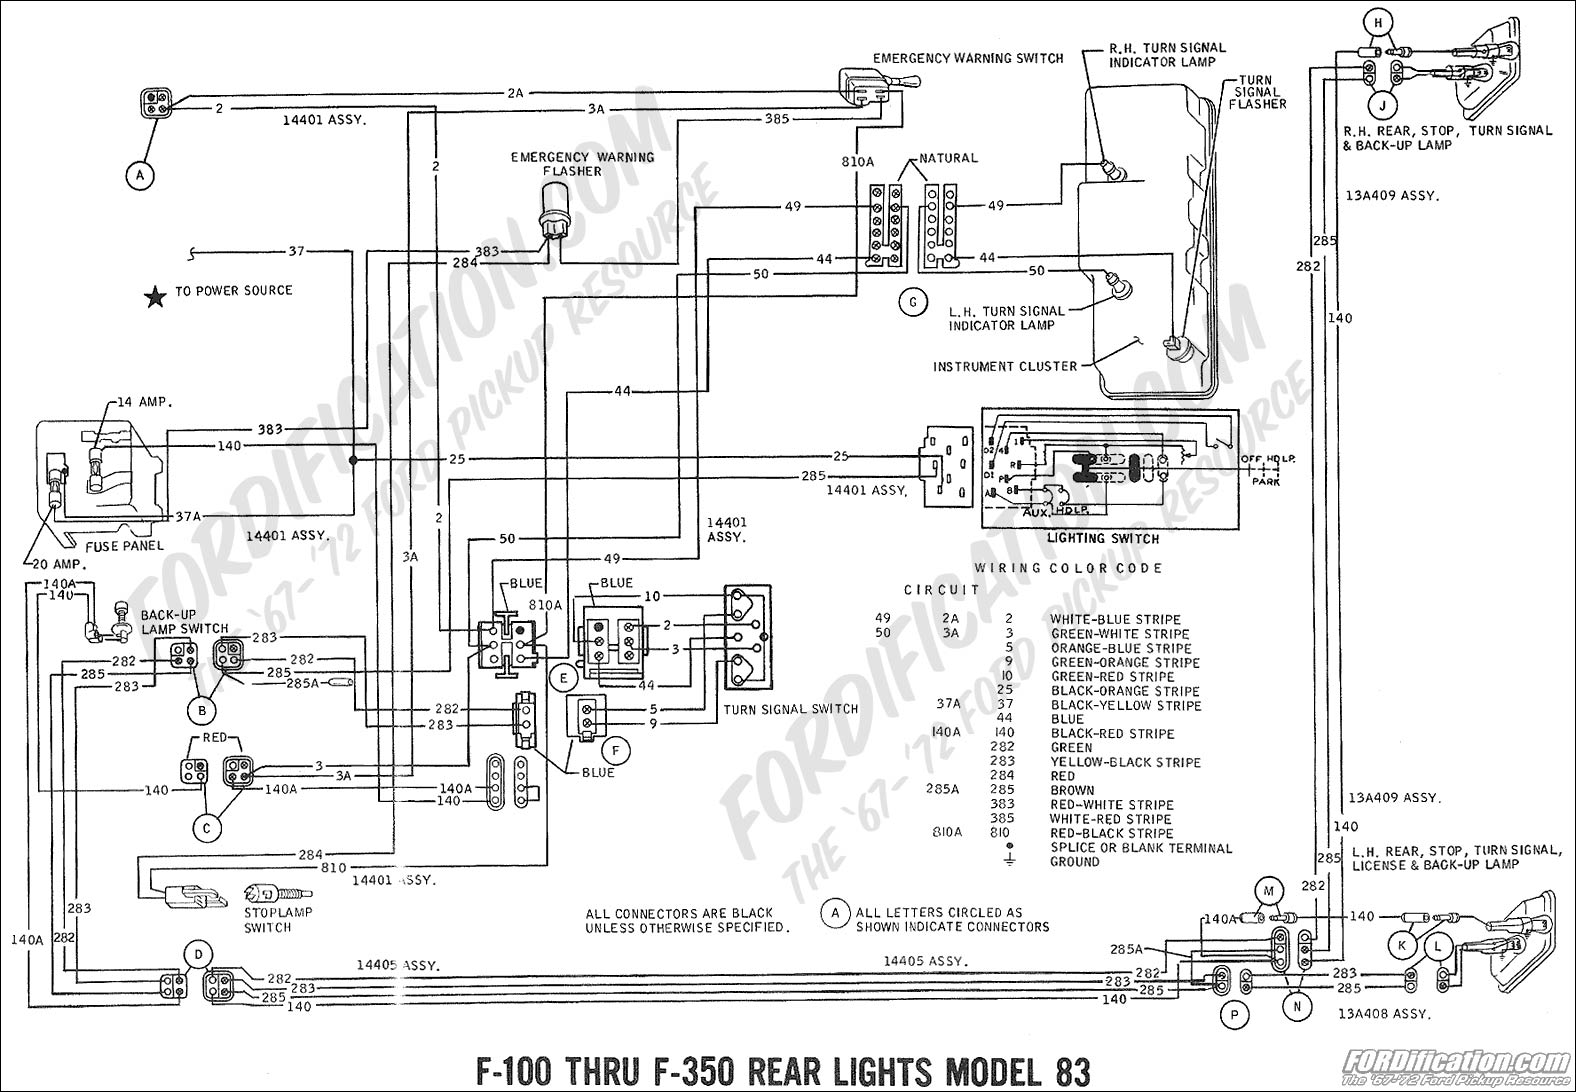 Ford Truck Technical Drawings and Schematics - Section H - Wiring Diagrams | 1969 Ford F150 Wiring Diagram |  | FORDification.com